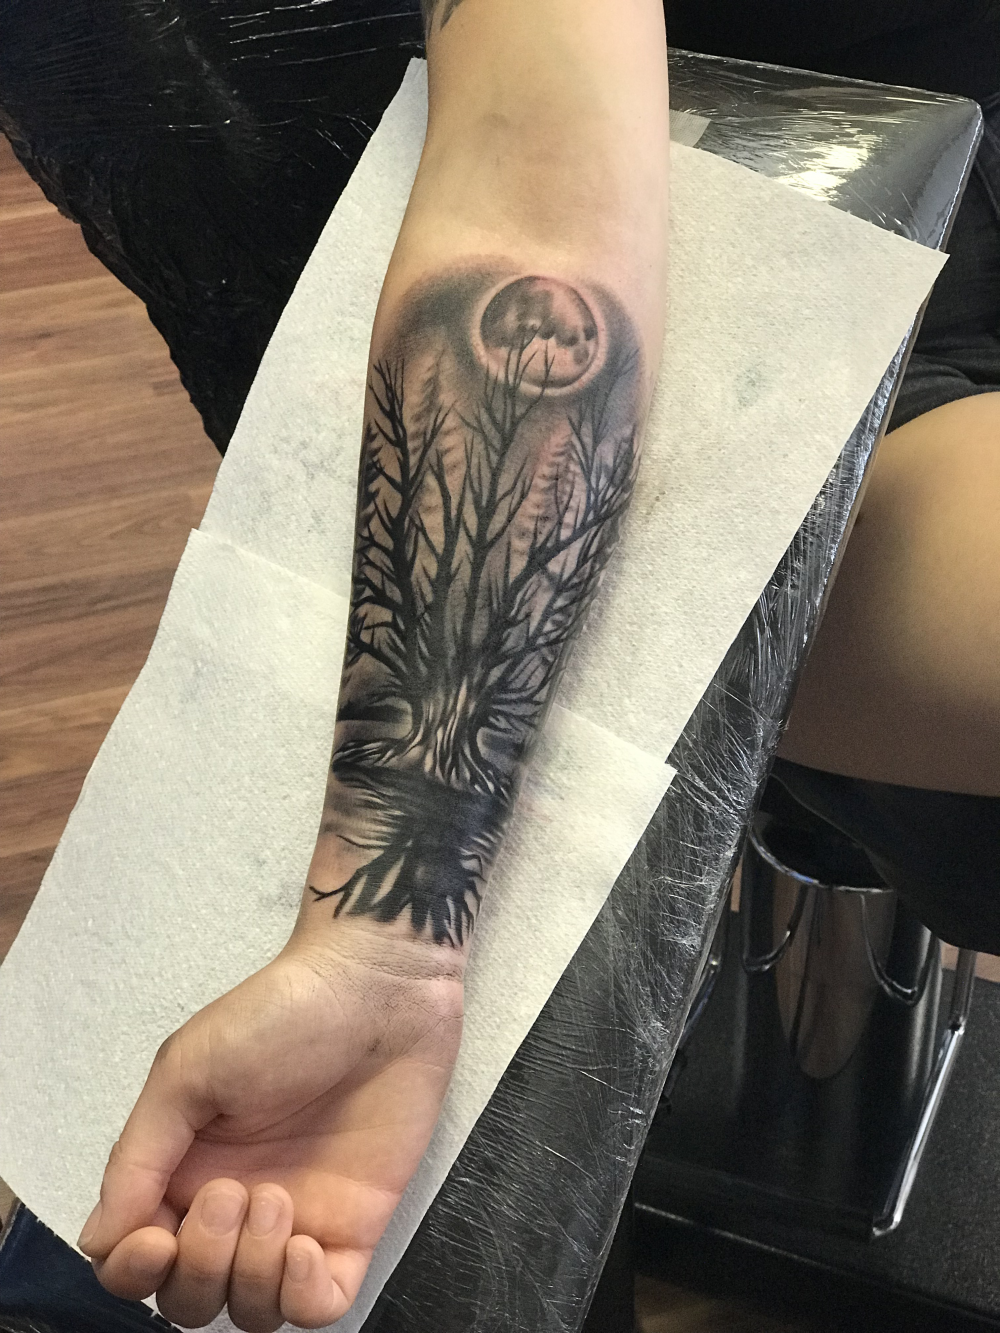 Forearm piece part of full sleeve pro